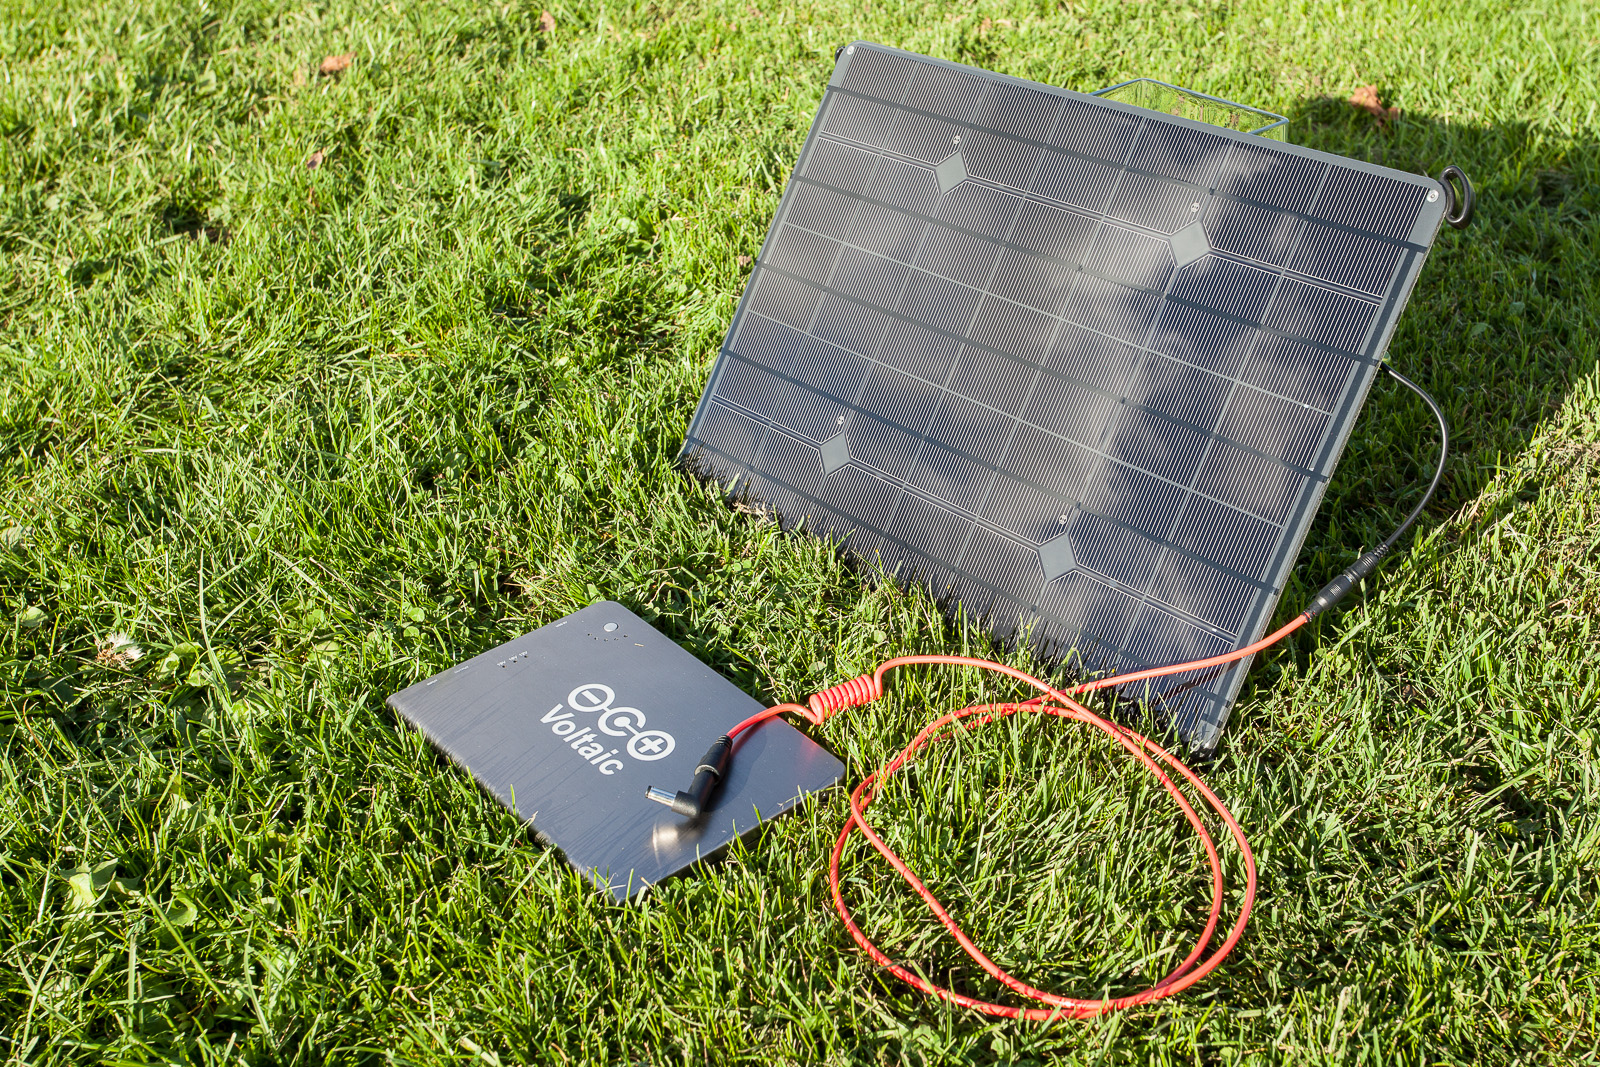 The core elements of the solar charging kit: The panel, the battery and a cable to connect the two...